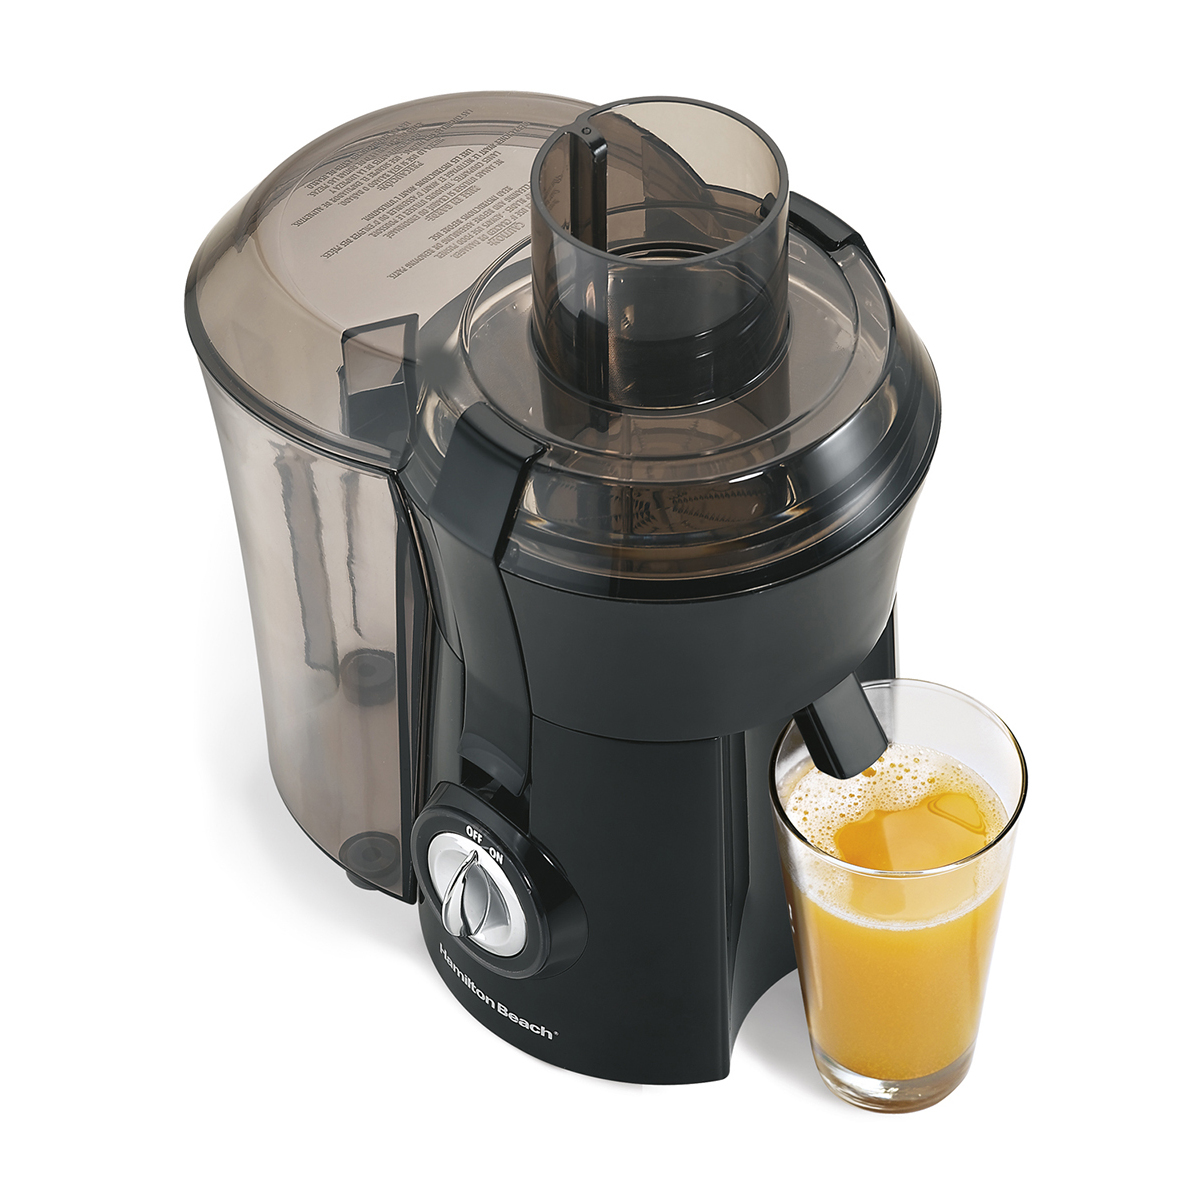 juicers hamiltonbeach com rh hamiltonbeach com The Mouth Juicer Craigslist Hamilton Beach 932